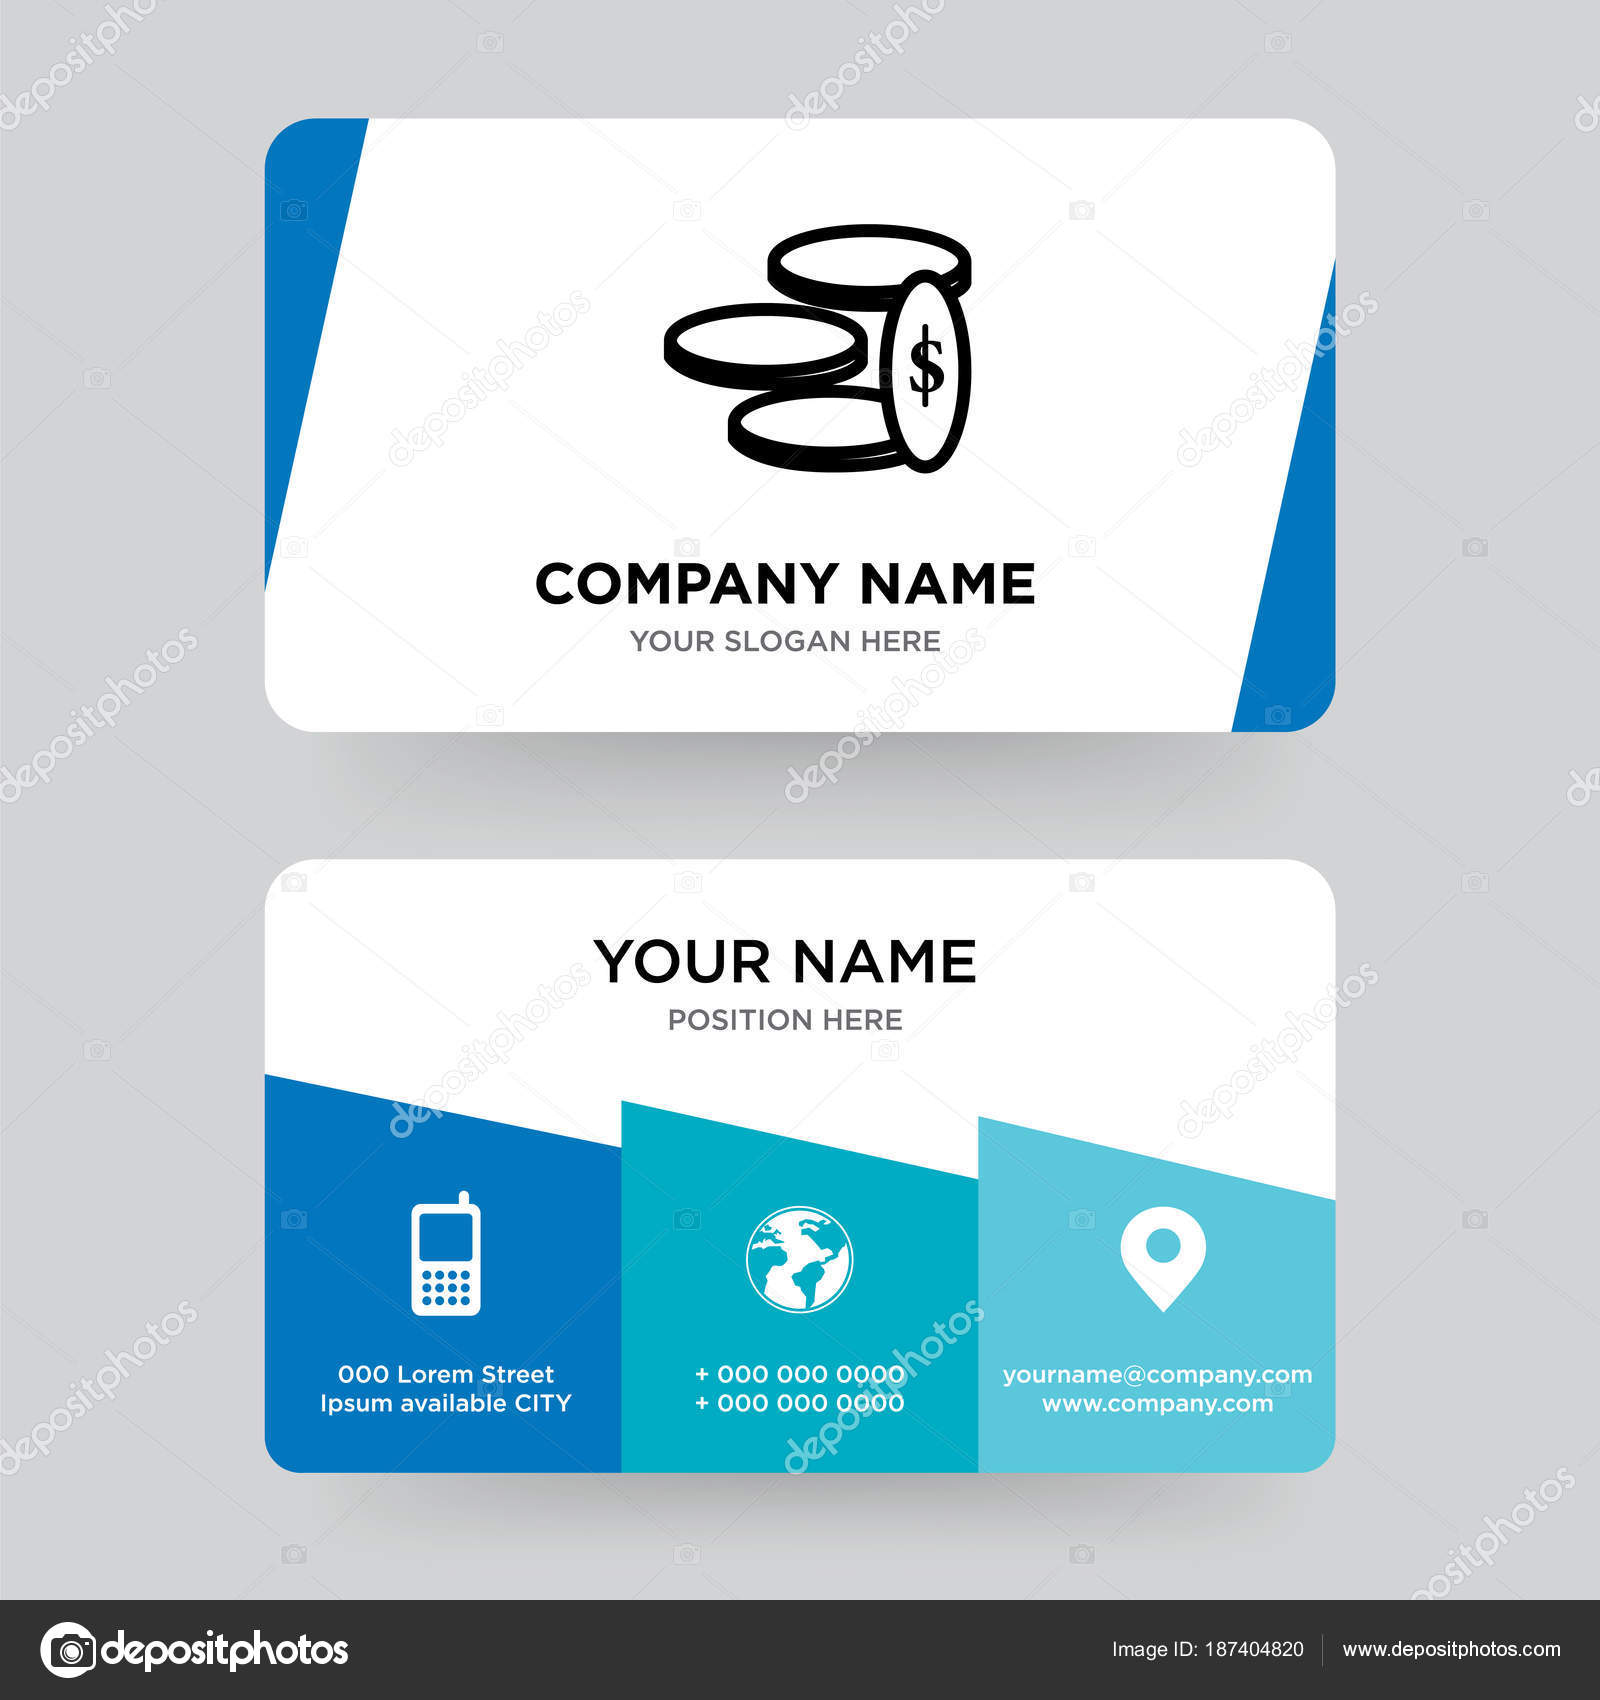 Money business card design template, Visiting for your company ...